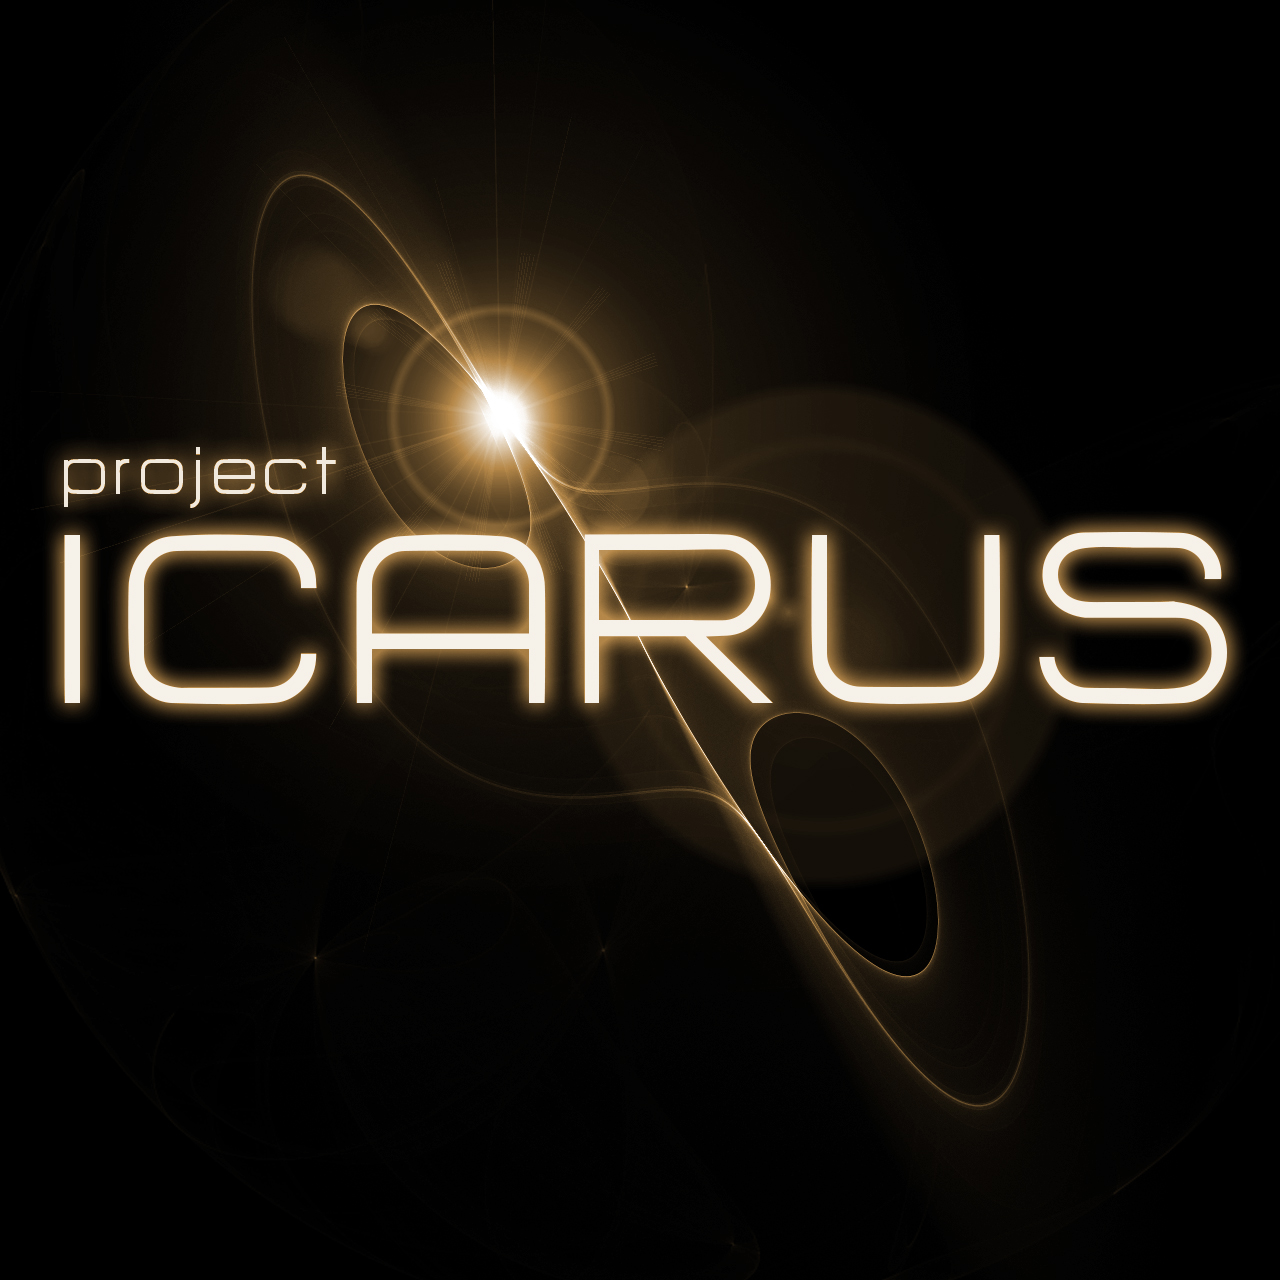 project icarus 1960s mit professor paul sandorff assigns best homework ever: create a plan to hijack the apollo project and launch saturn v rockets to deflect an asteroid that's.